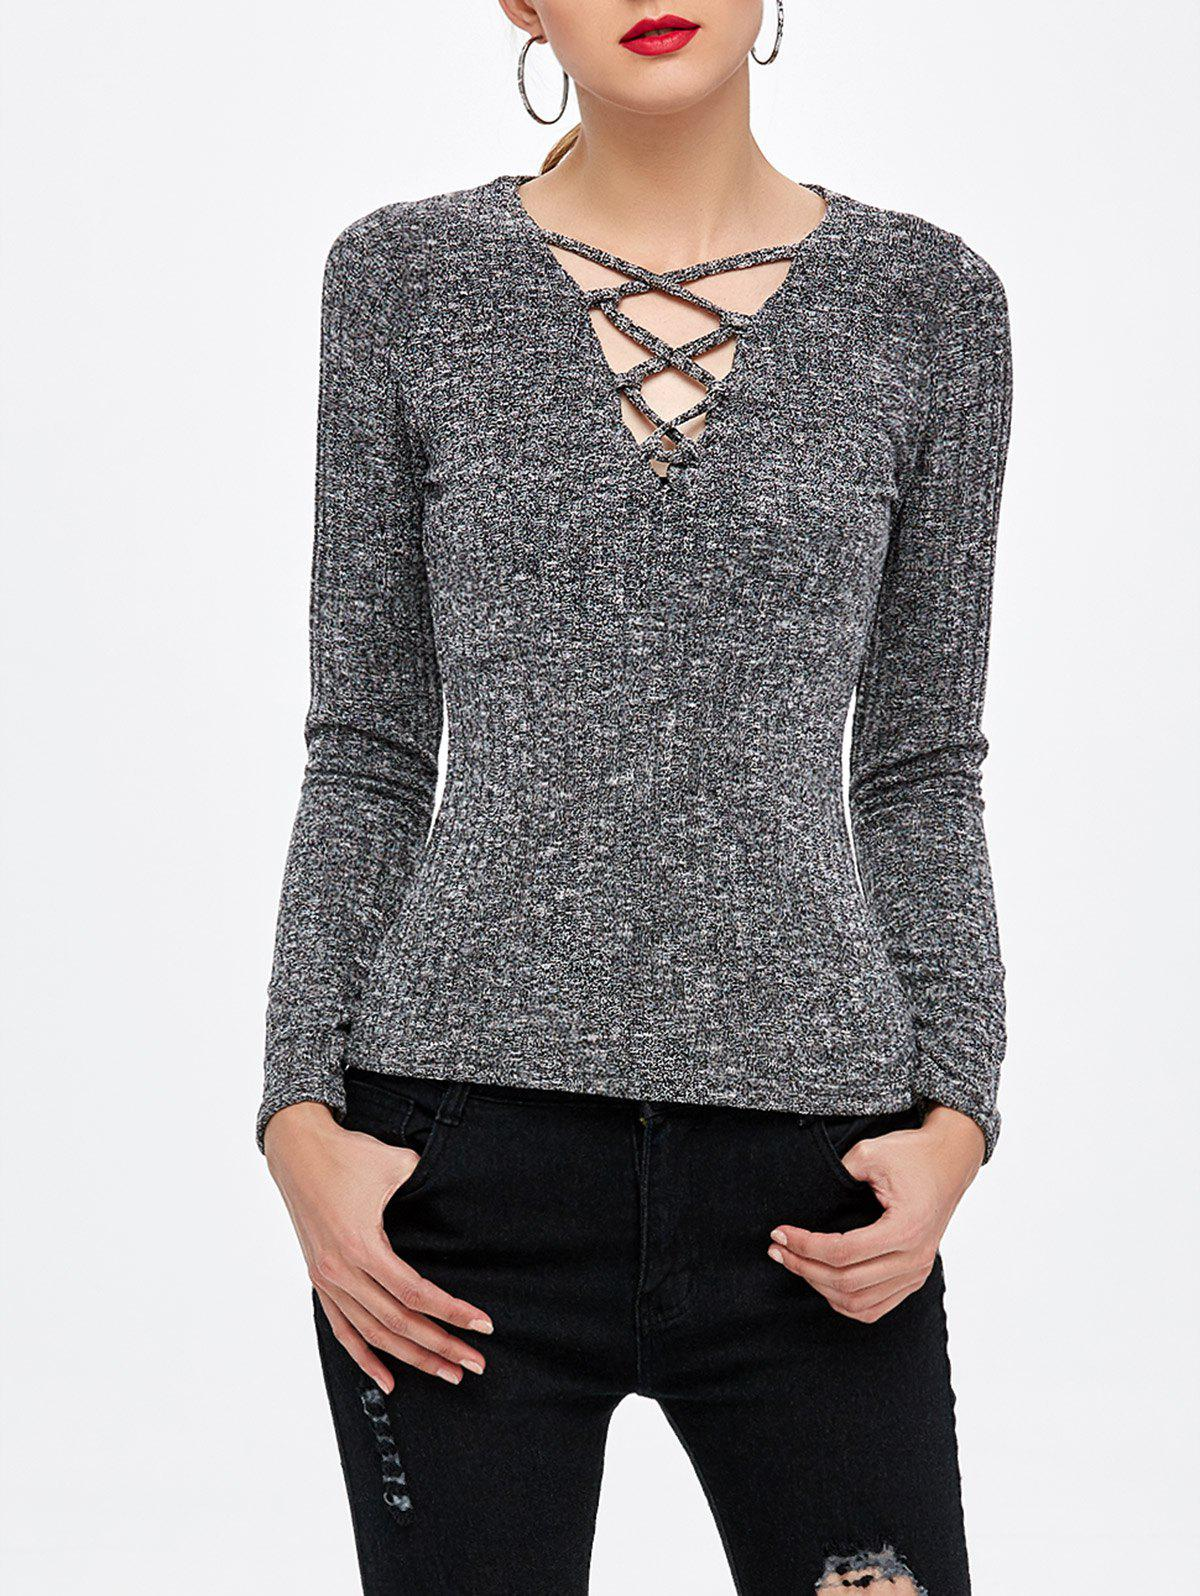 Lace Up Knitted Top - DEEP GRAY M